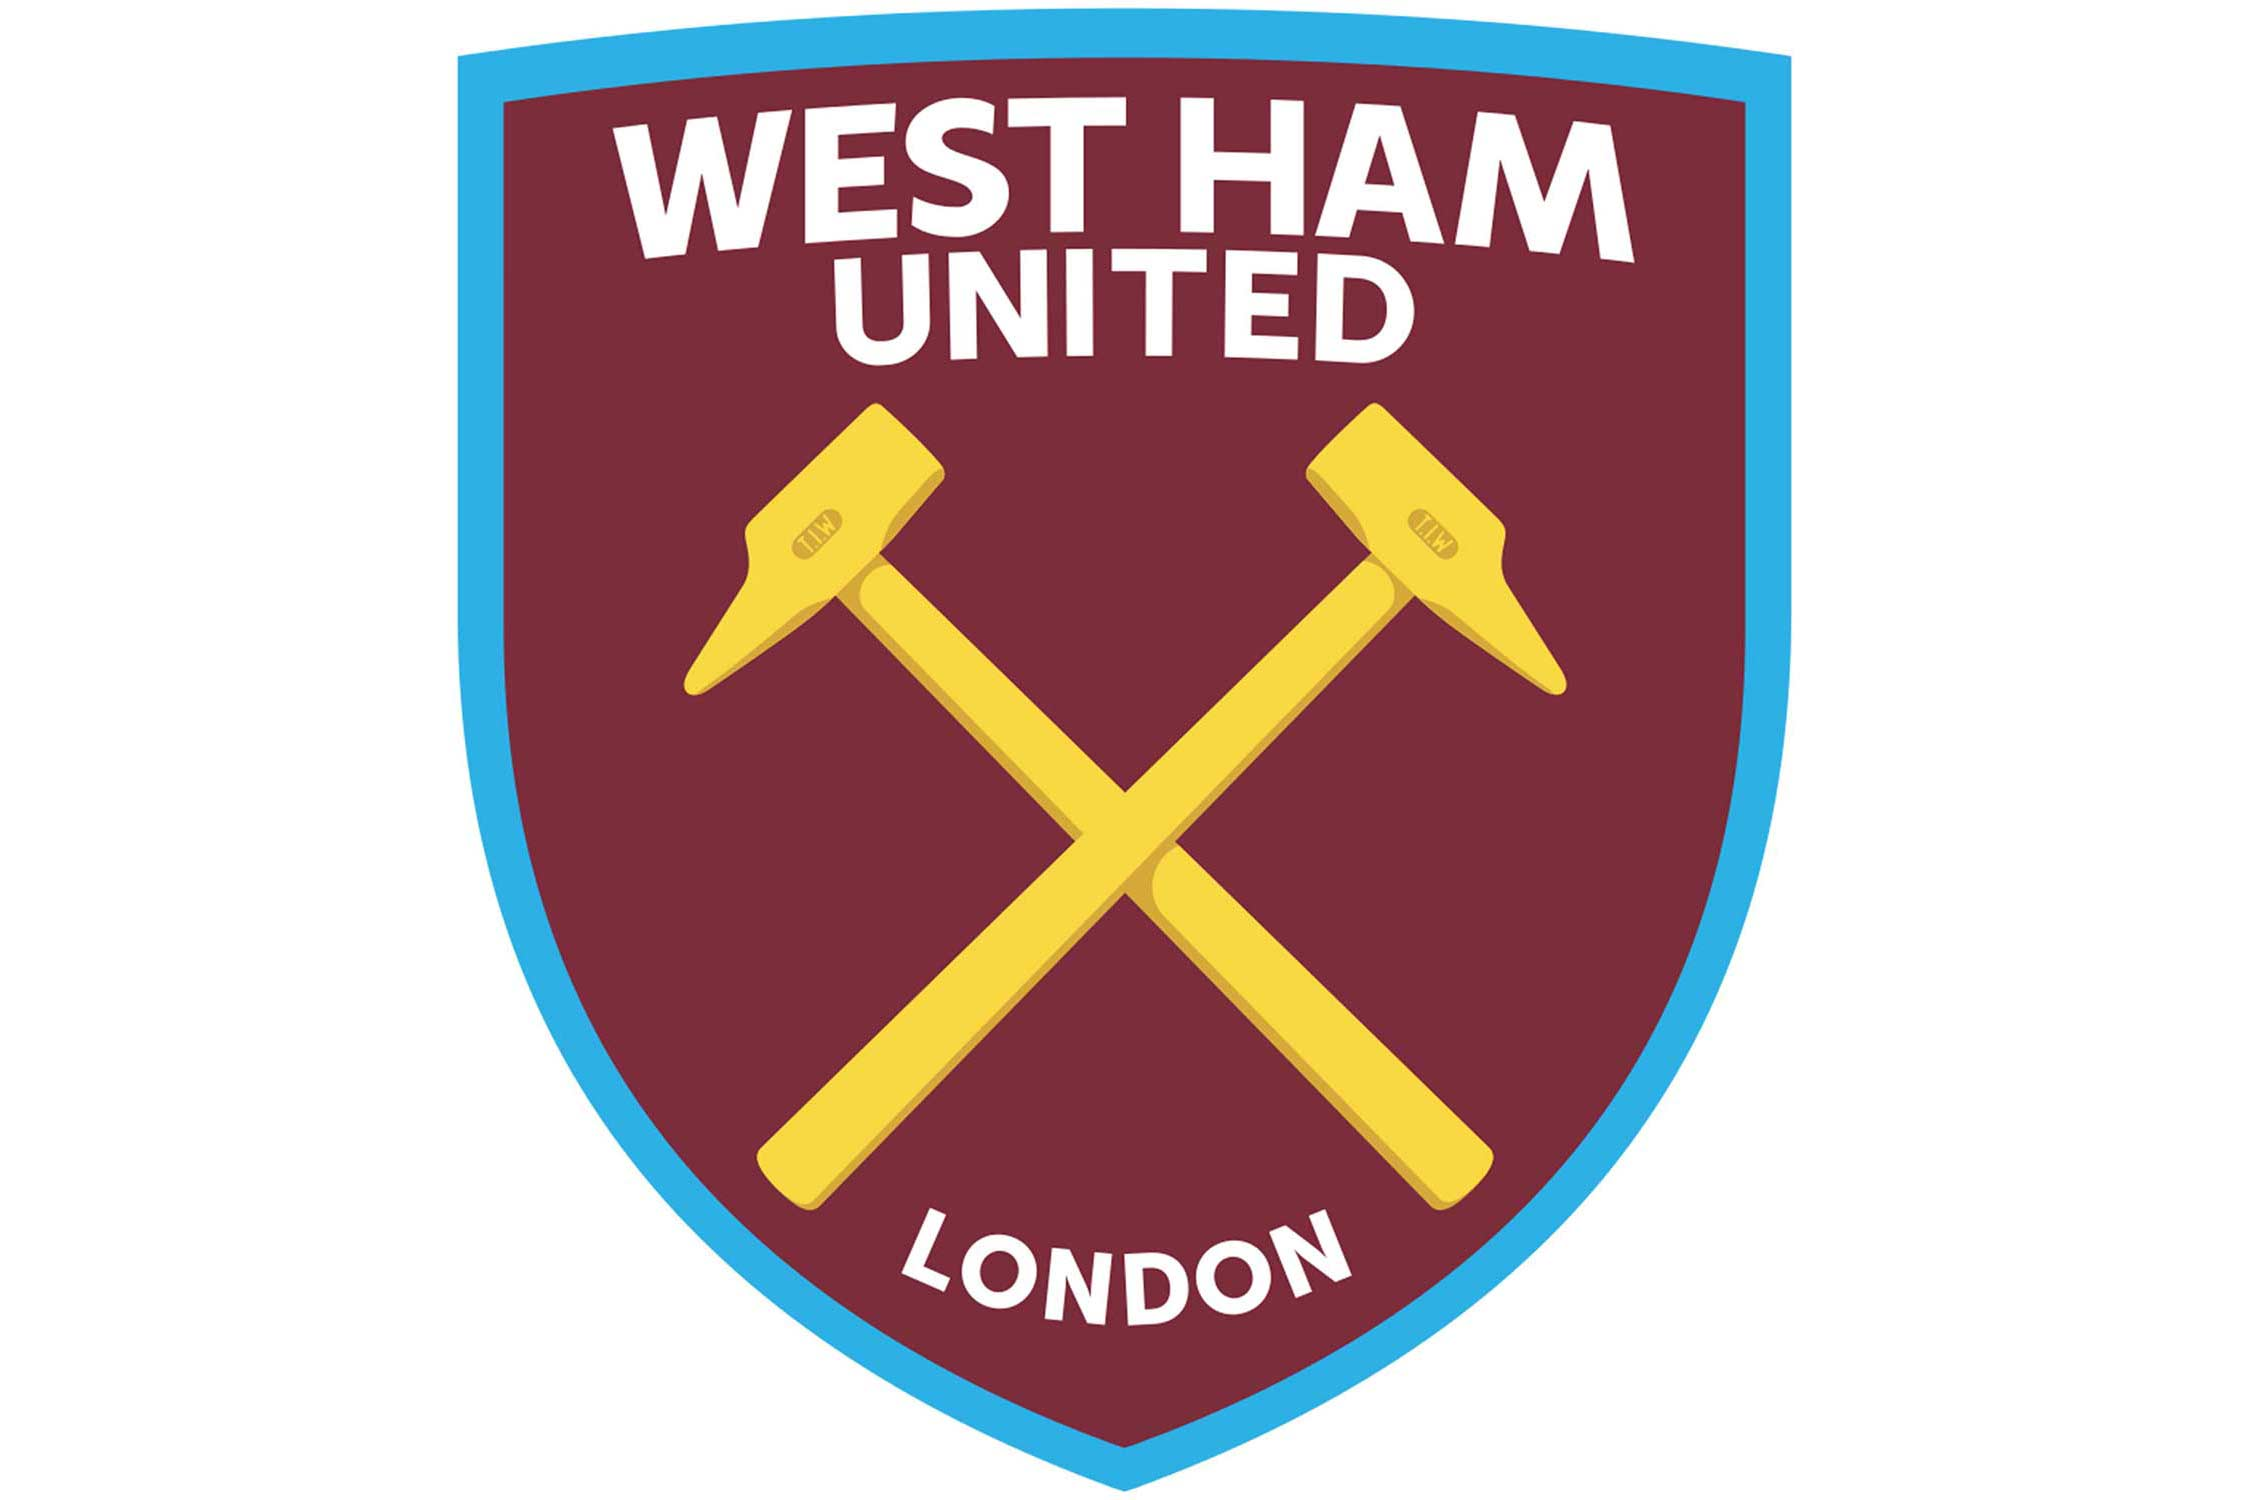 Introduced in 2016, the shape of the new West Ham United crest is modeled after the hull of the HMS Warrior, the first ironclad ship in the British navy, commissioned in 1861. The ship was built by Thames Ironworks, which was the company that formed the club now known as West Ham United. A subtle reference to Thames Ironworks (TIW) can be seen on the hammers in the logo itself.